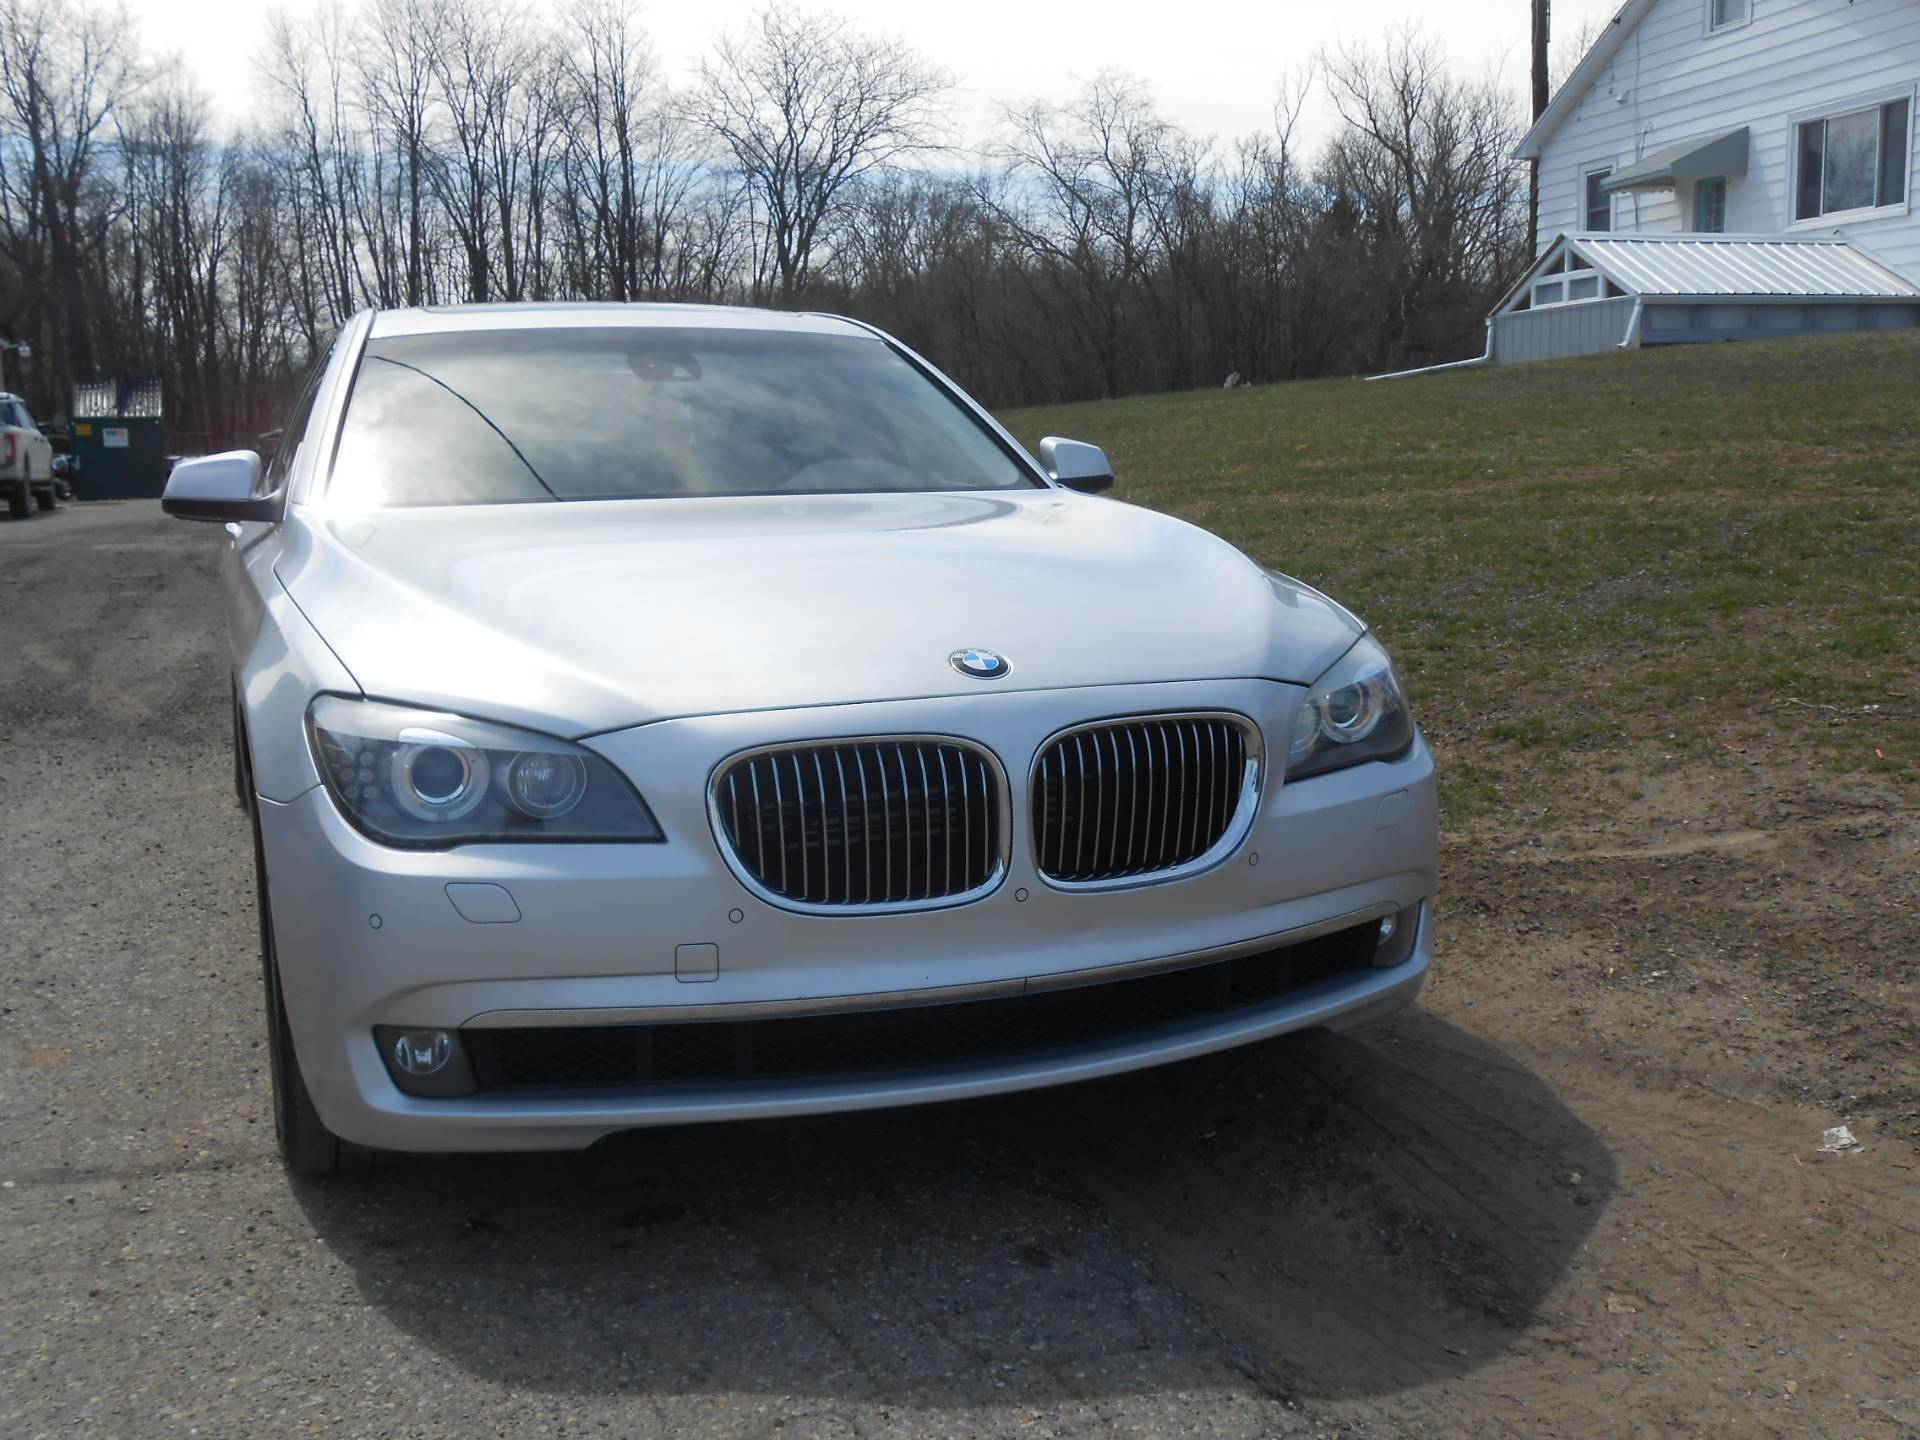 2010 BMW 750li in Howell, Michigan - Photo 2